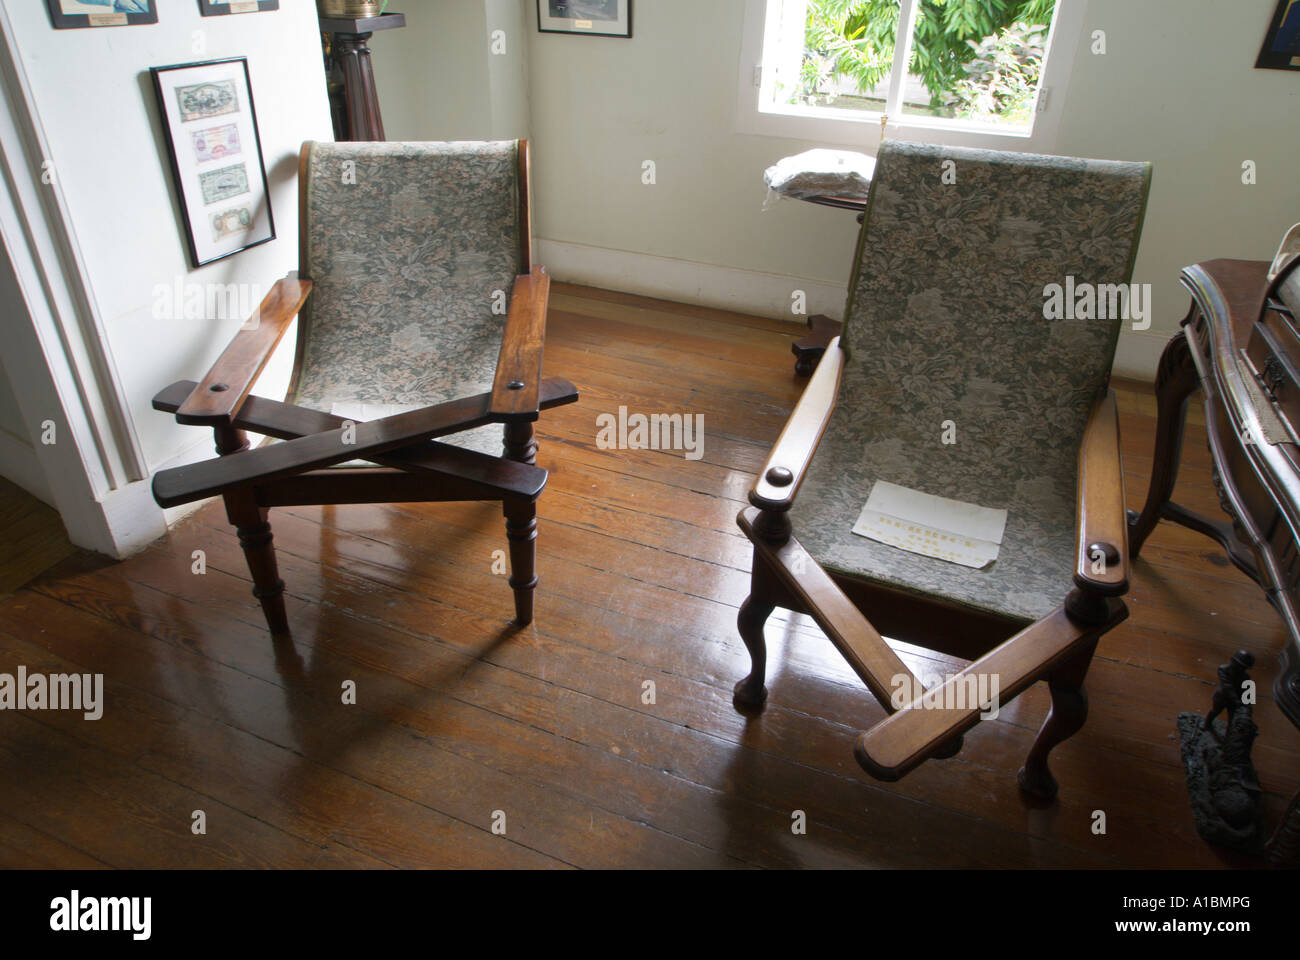 Superior Barbados Sunbury Plantation House St Philip Colonial Period Interior  Planters Chairs With Leg Rests